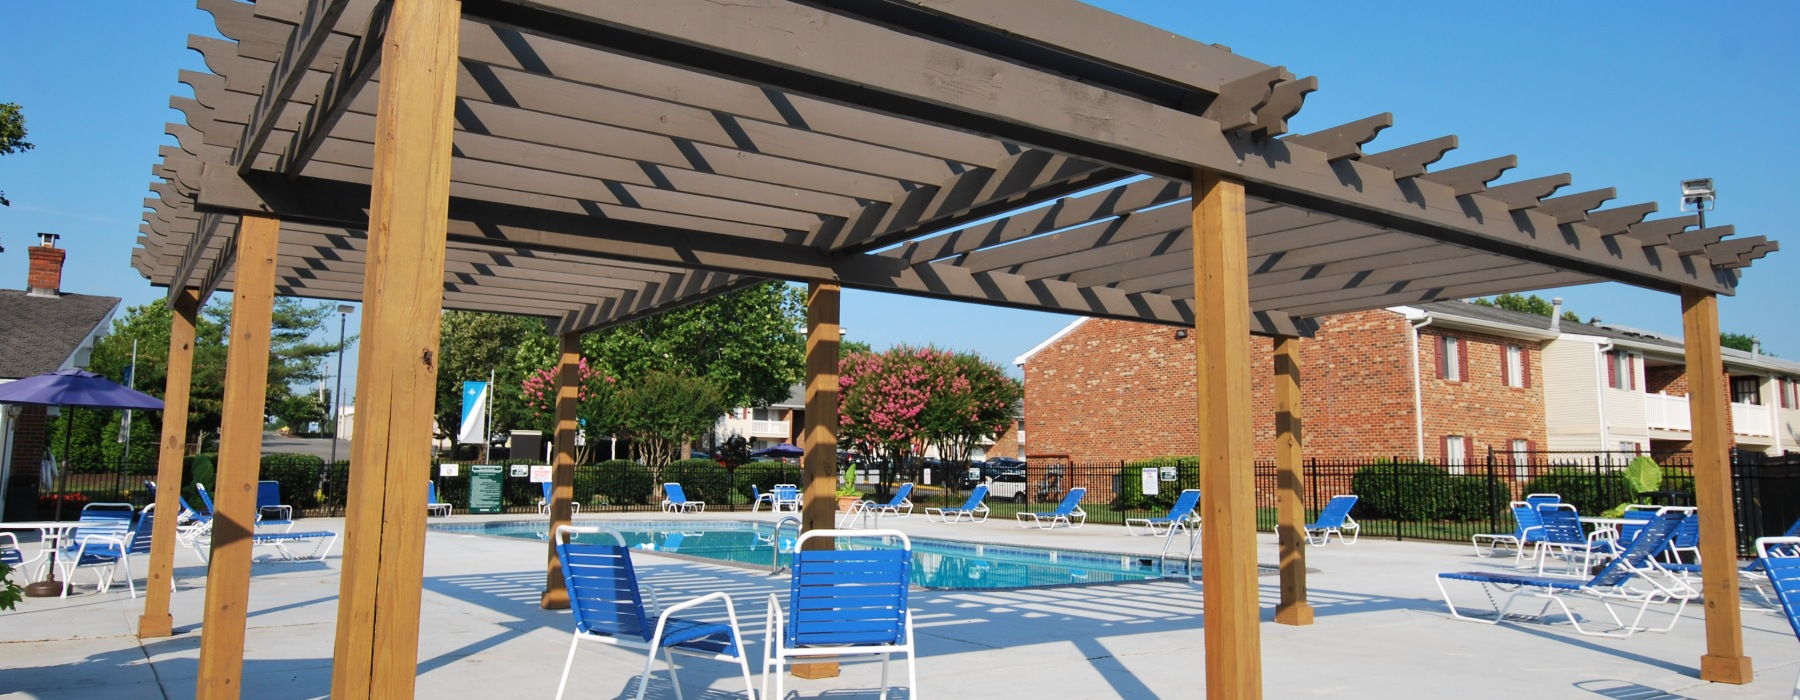 Large wooden pergola overlooking a crystal blue swimming pool